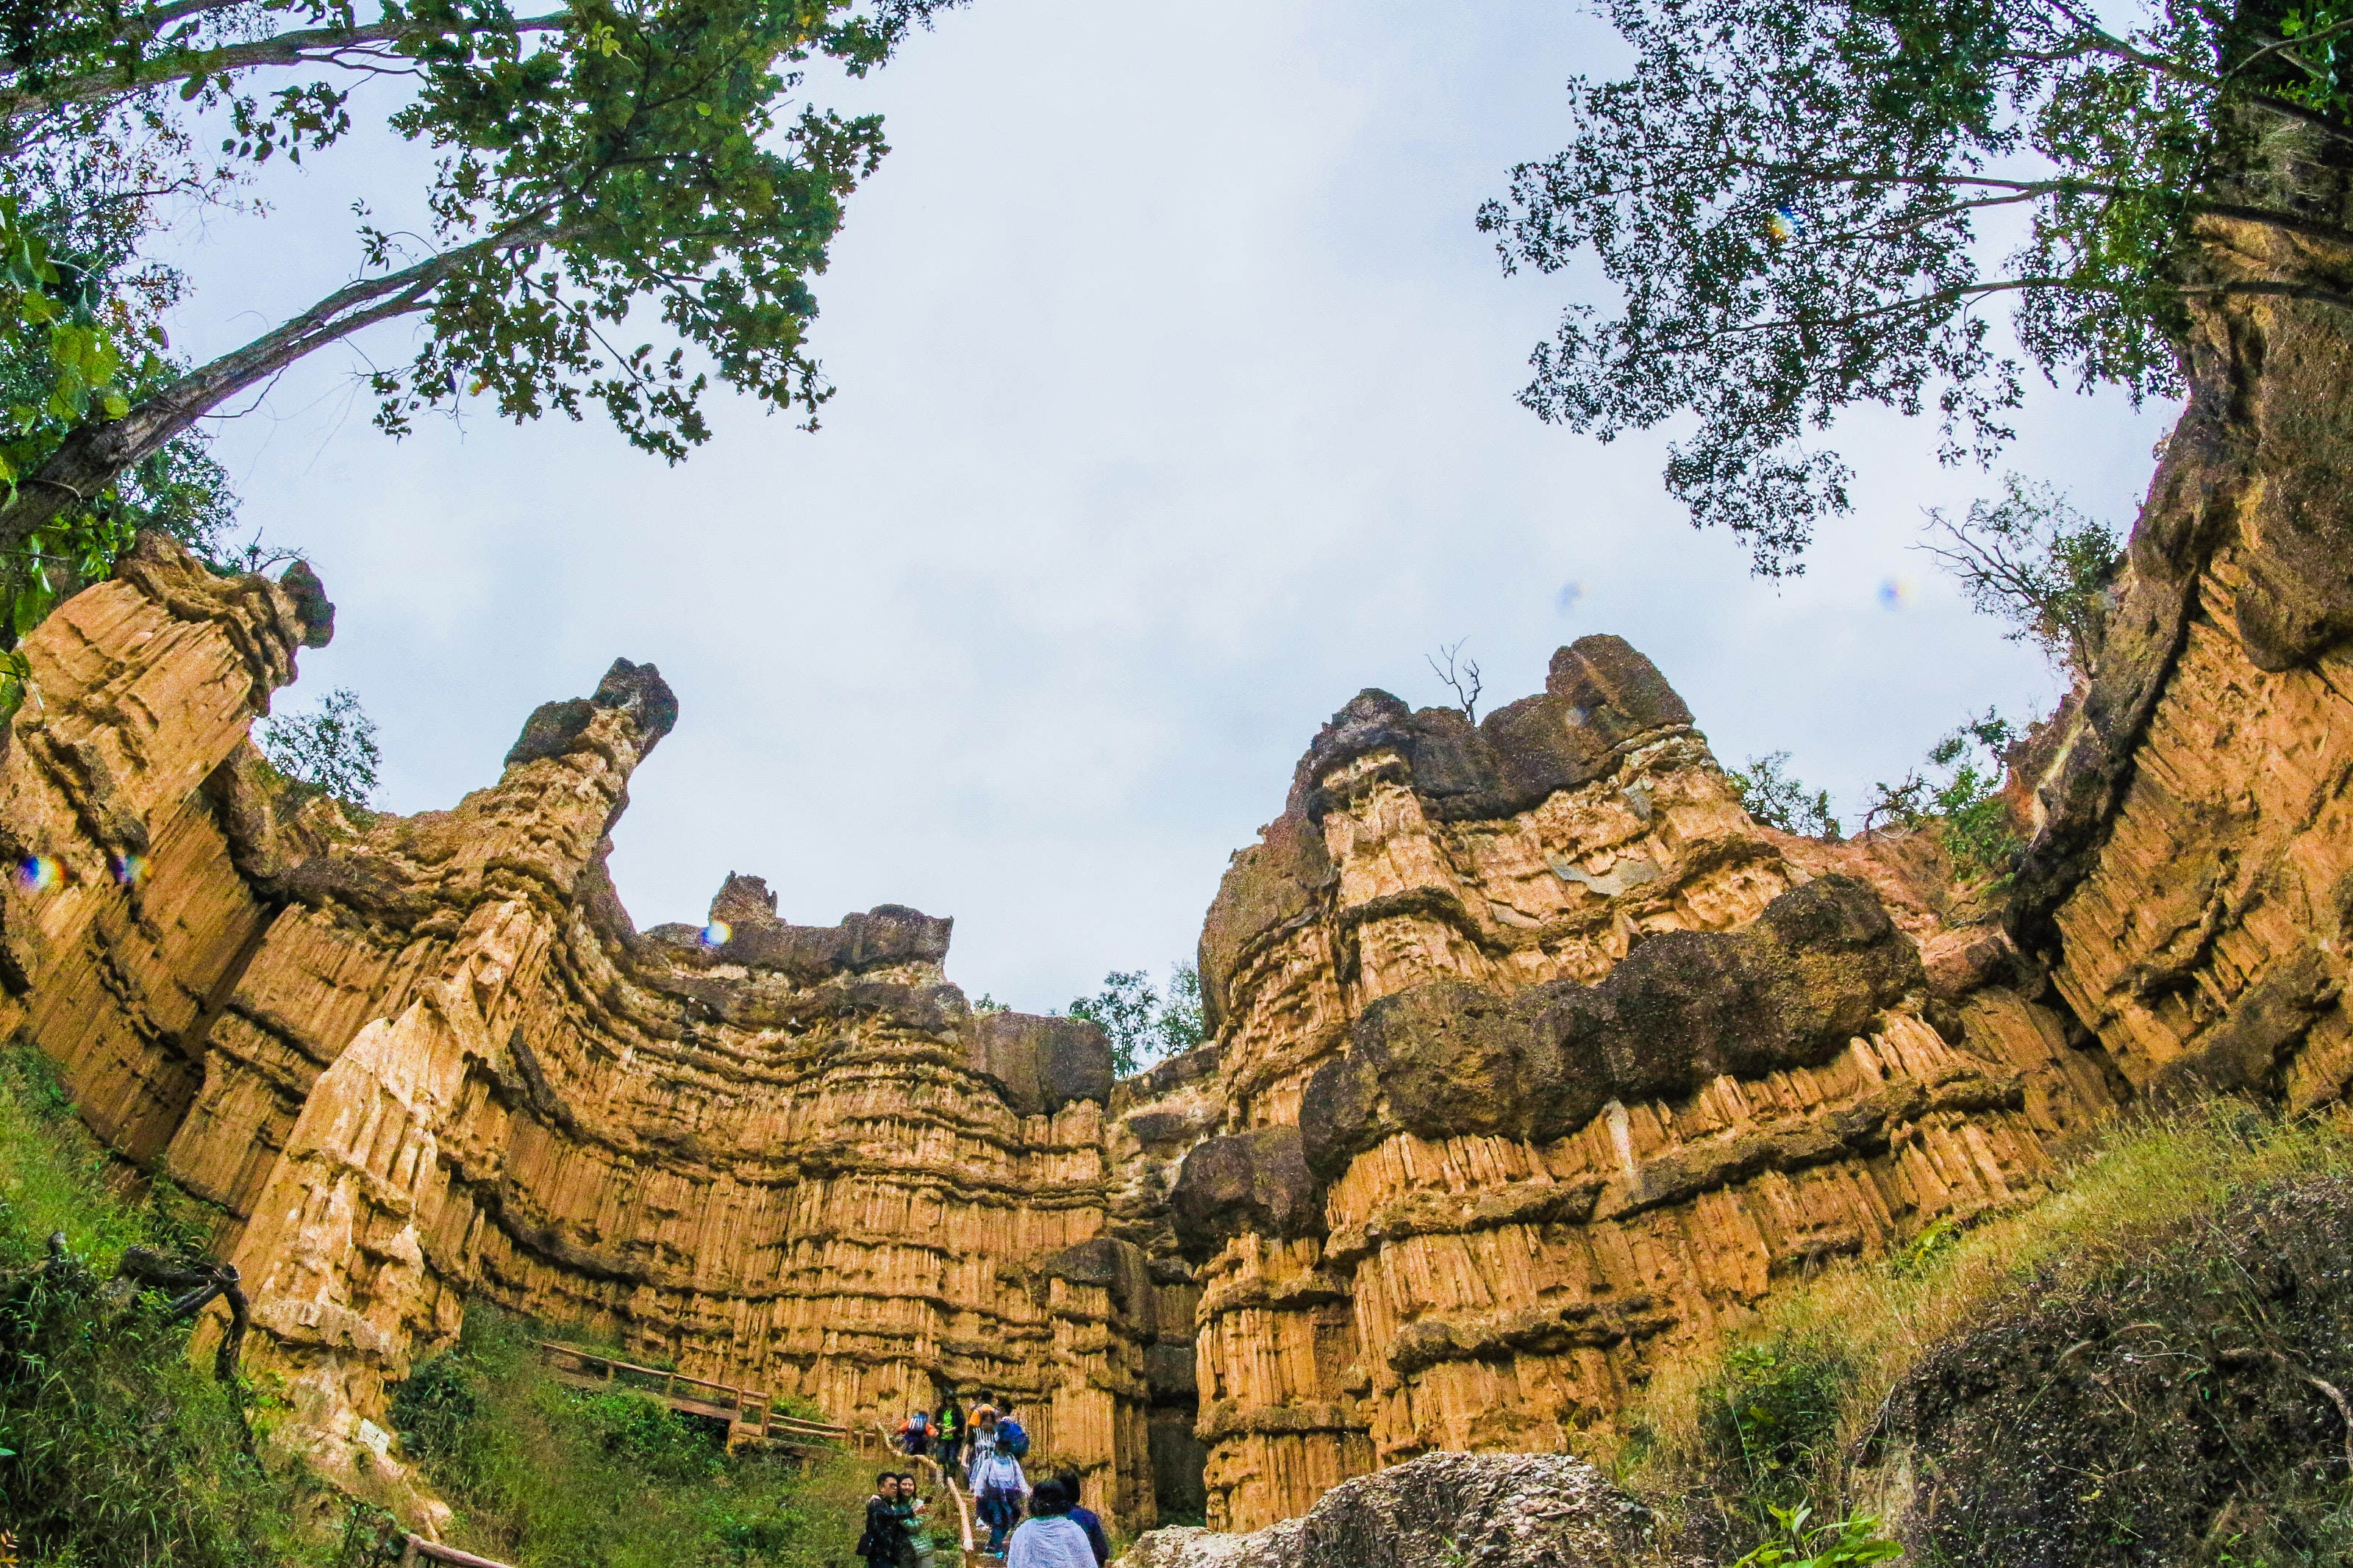 Low Angle View of Brown Ruins Near Green Leaf Trees, Adventure, Scenic, Outdoors, Park, HQ Photo